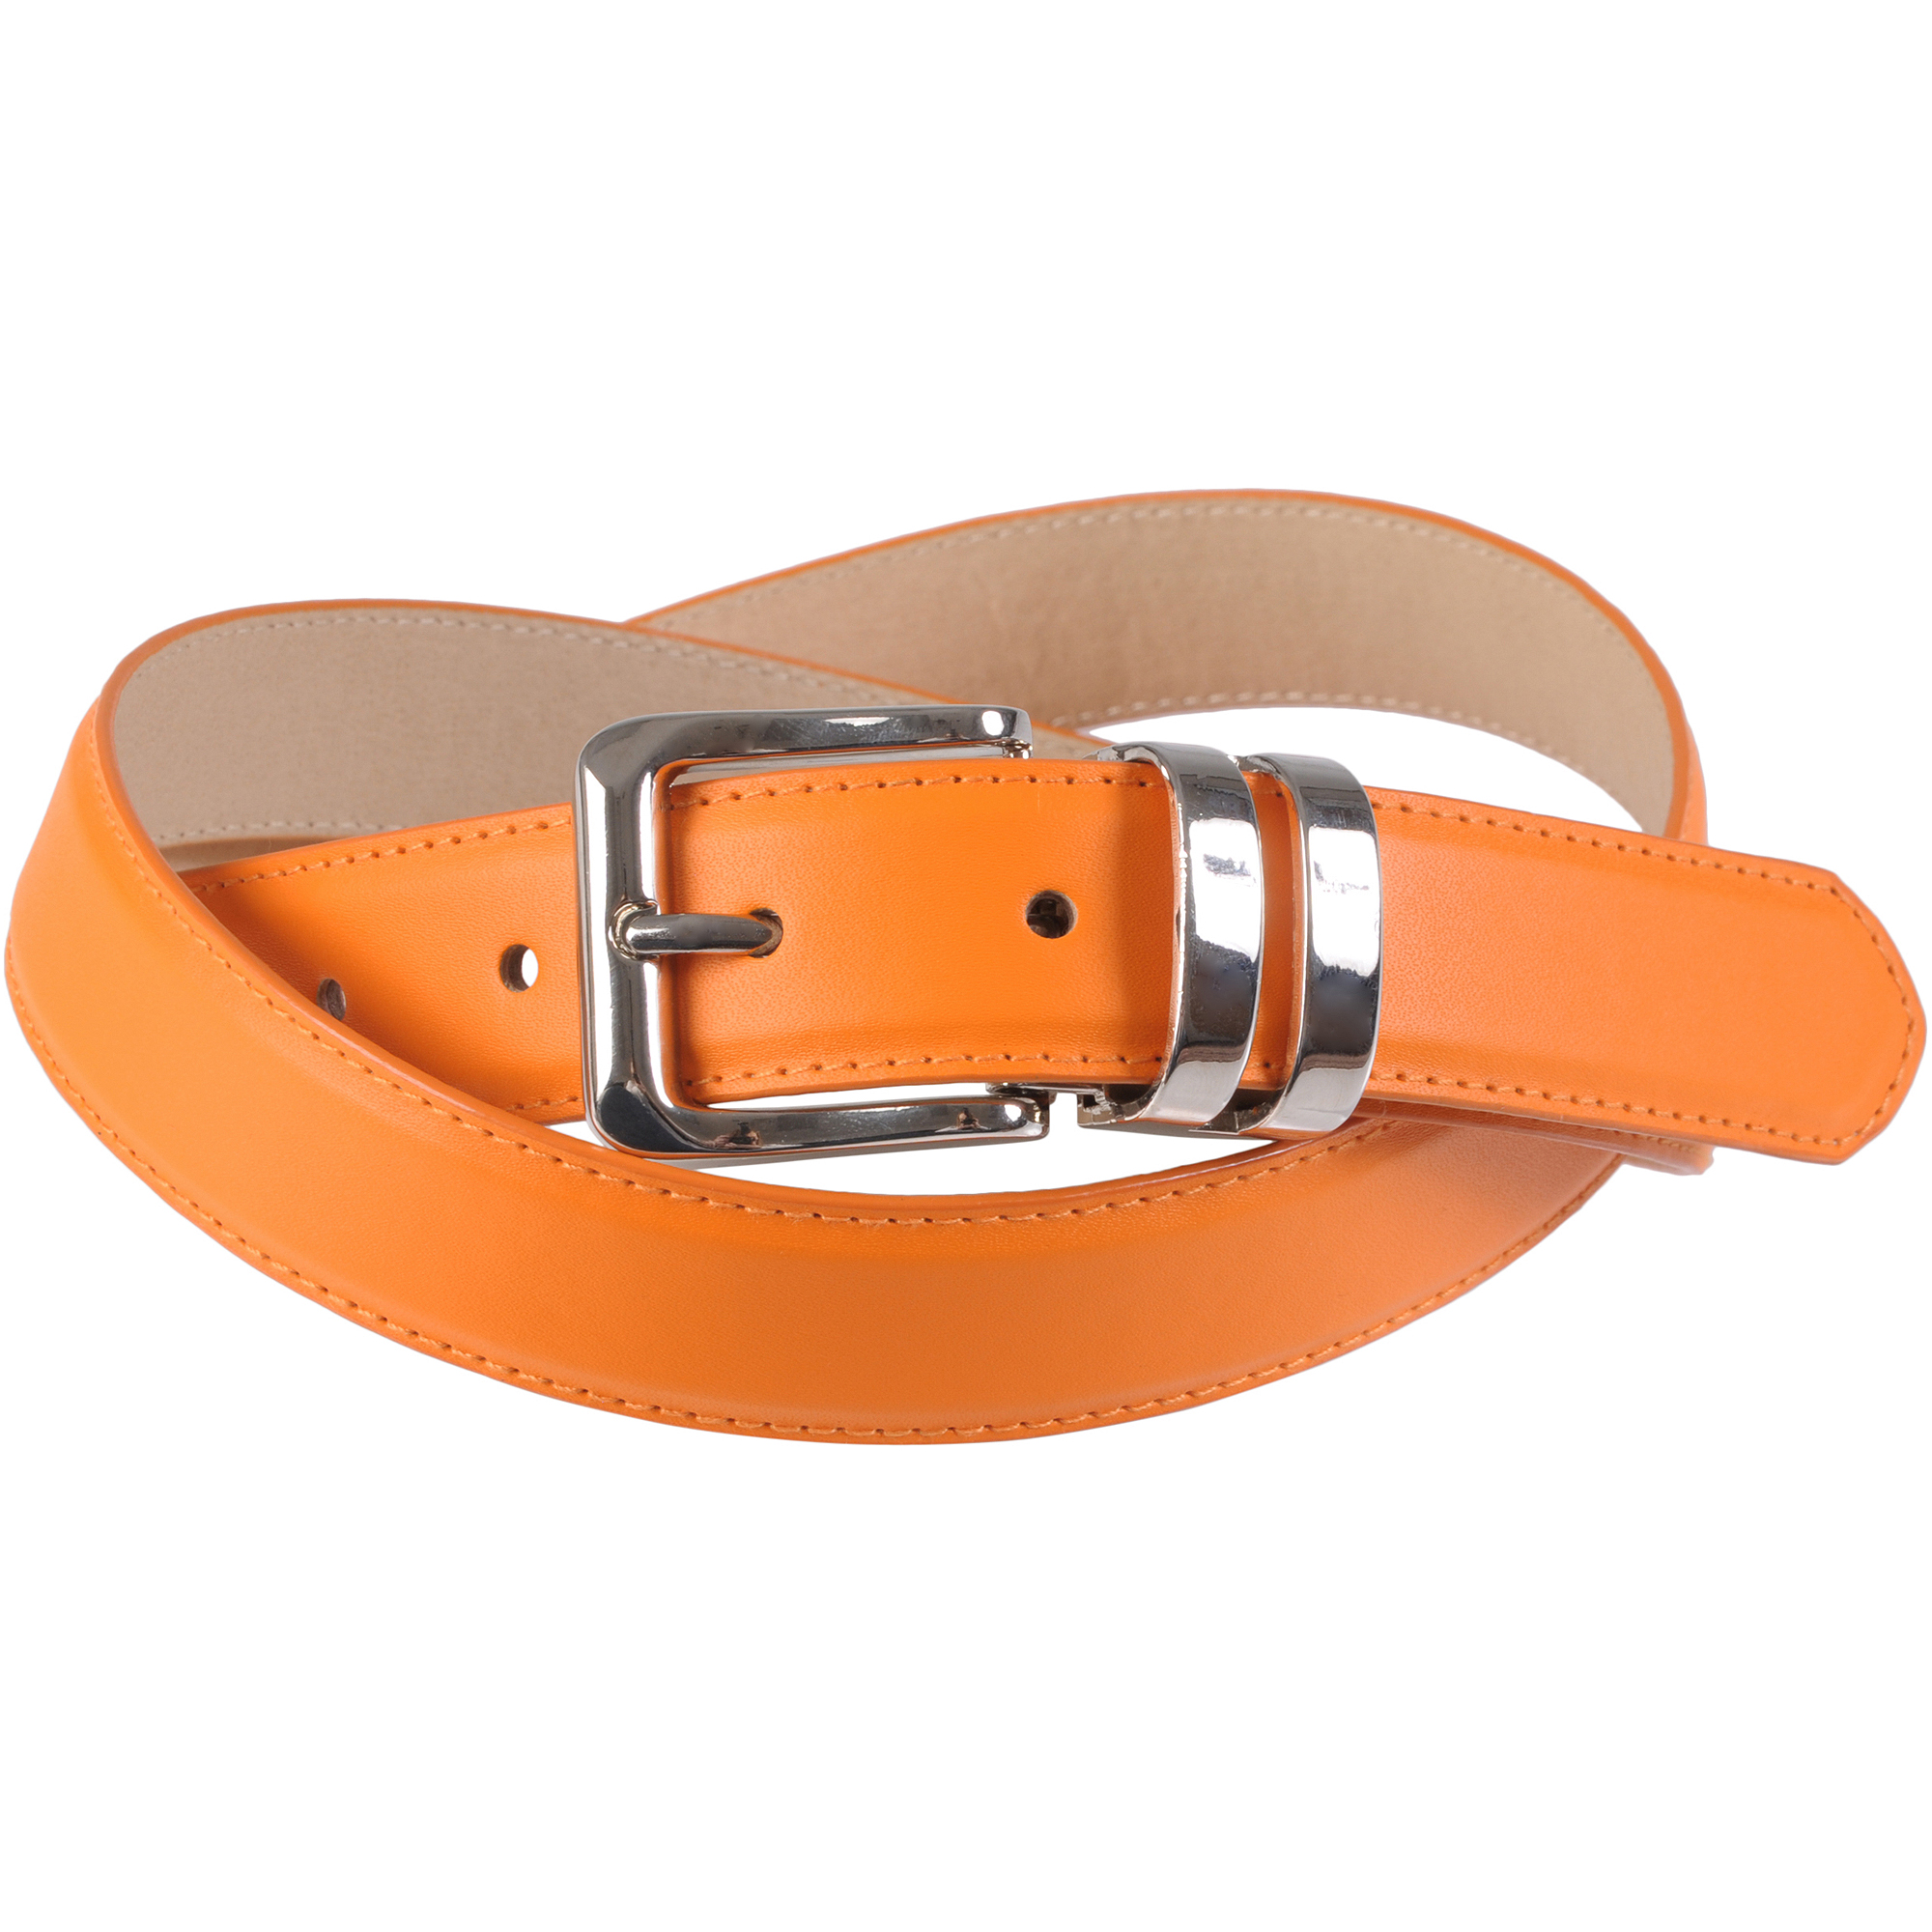 Brinley Co Womens Clamp Buckle Feather Edge Belt